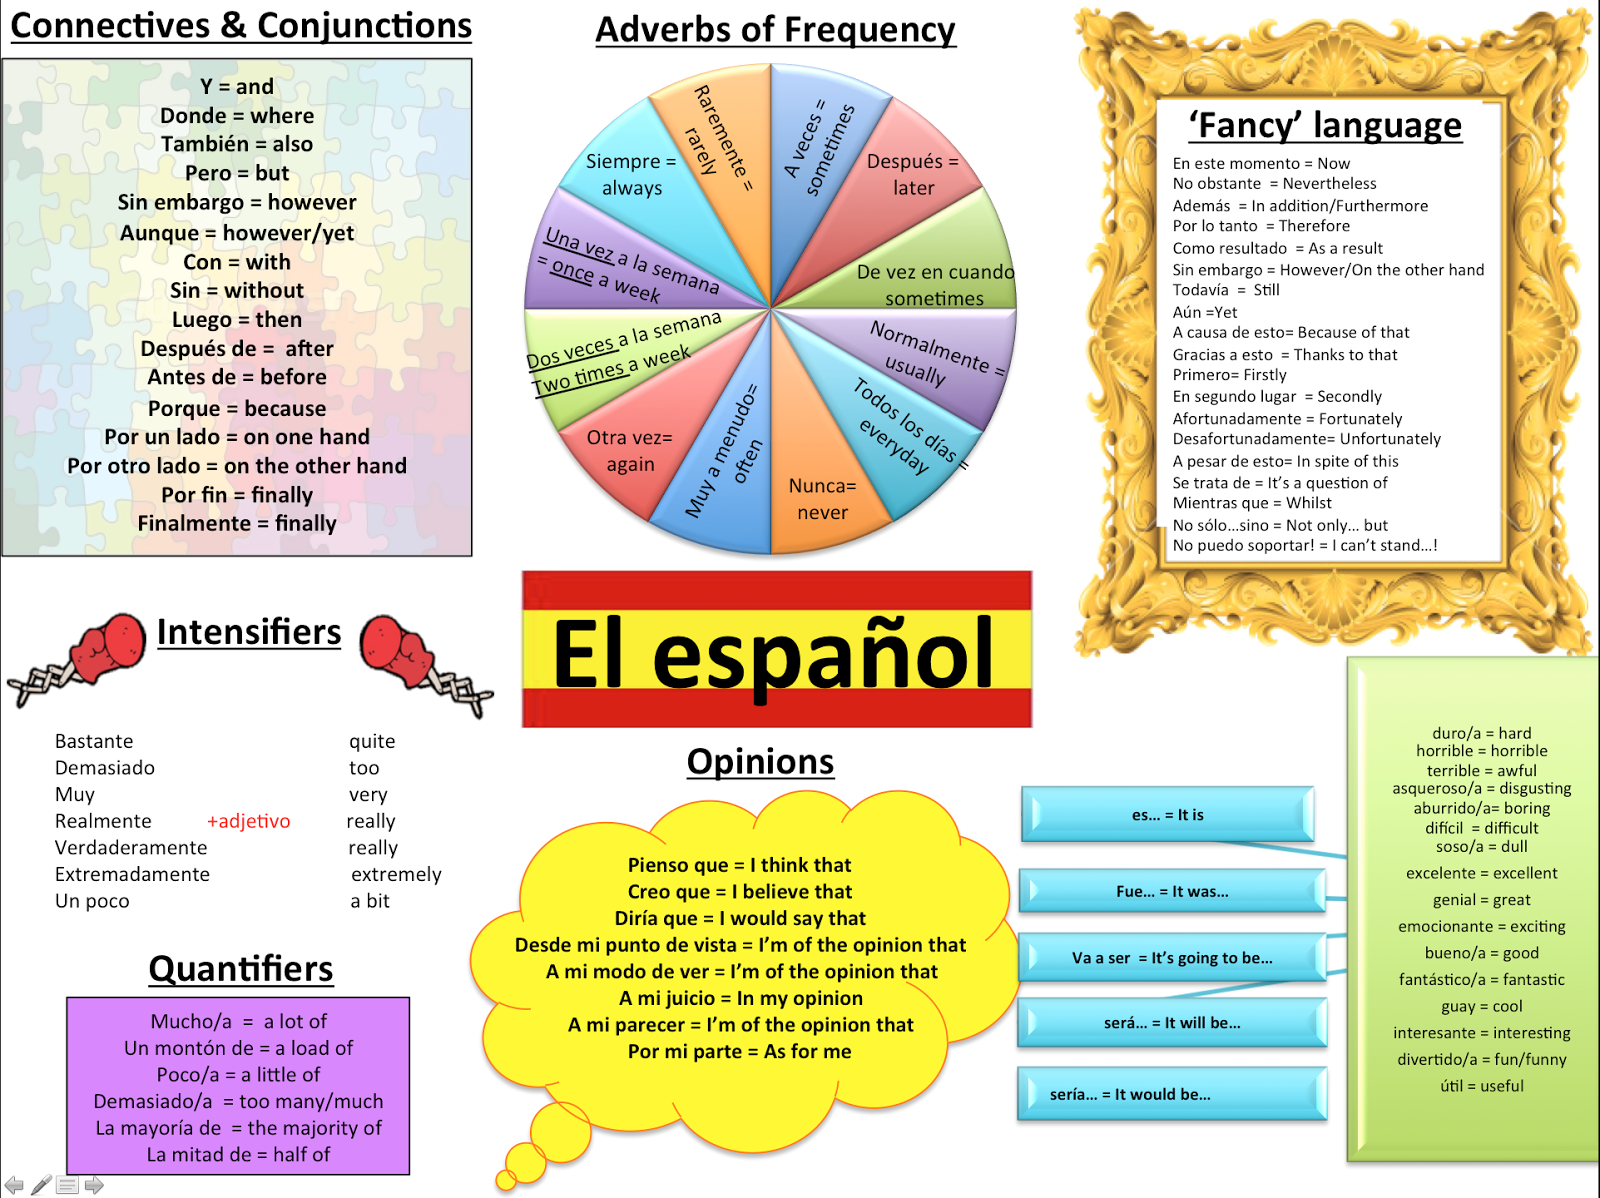 write good spanish essay Spanish essays provides cost effective spanish writing services online including essays, research papers, dissertations, term papers, movie reviews among other academic documents to students in the united states and other parts of the world.